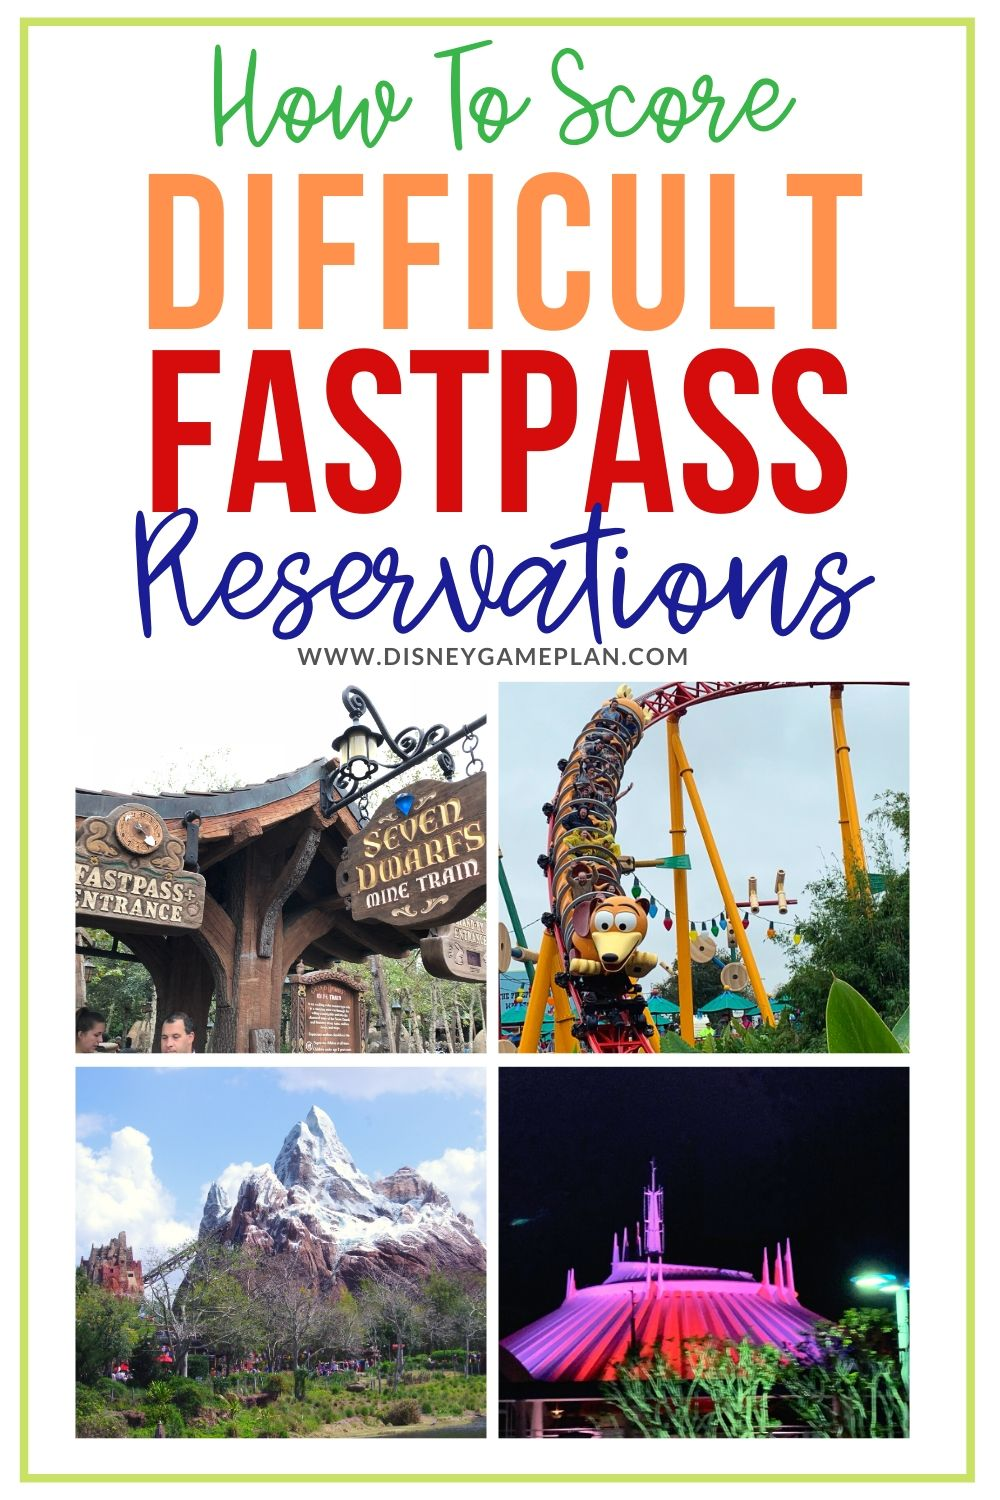 Some Disney Fastpasses are notoriously difficult to snag. But don't give up hope. Here are tips on how to obtain even the most elusive Fastpass reservations at Walt Disney World.